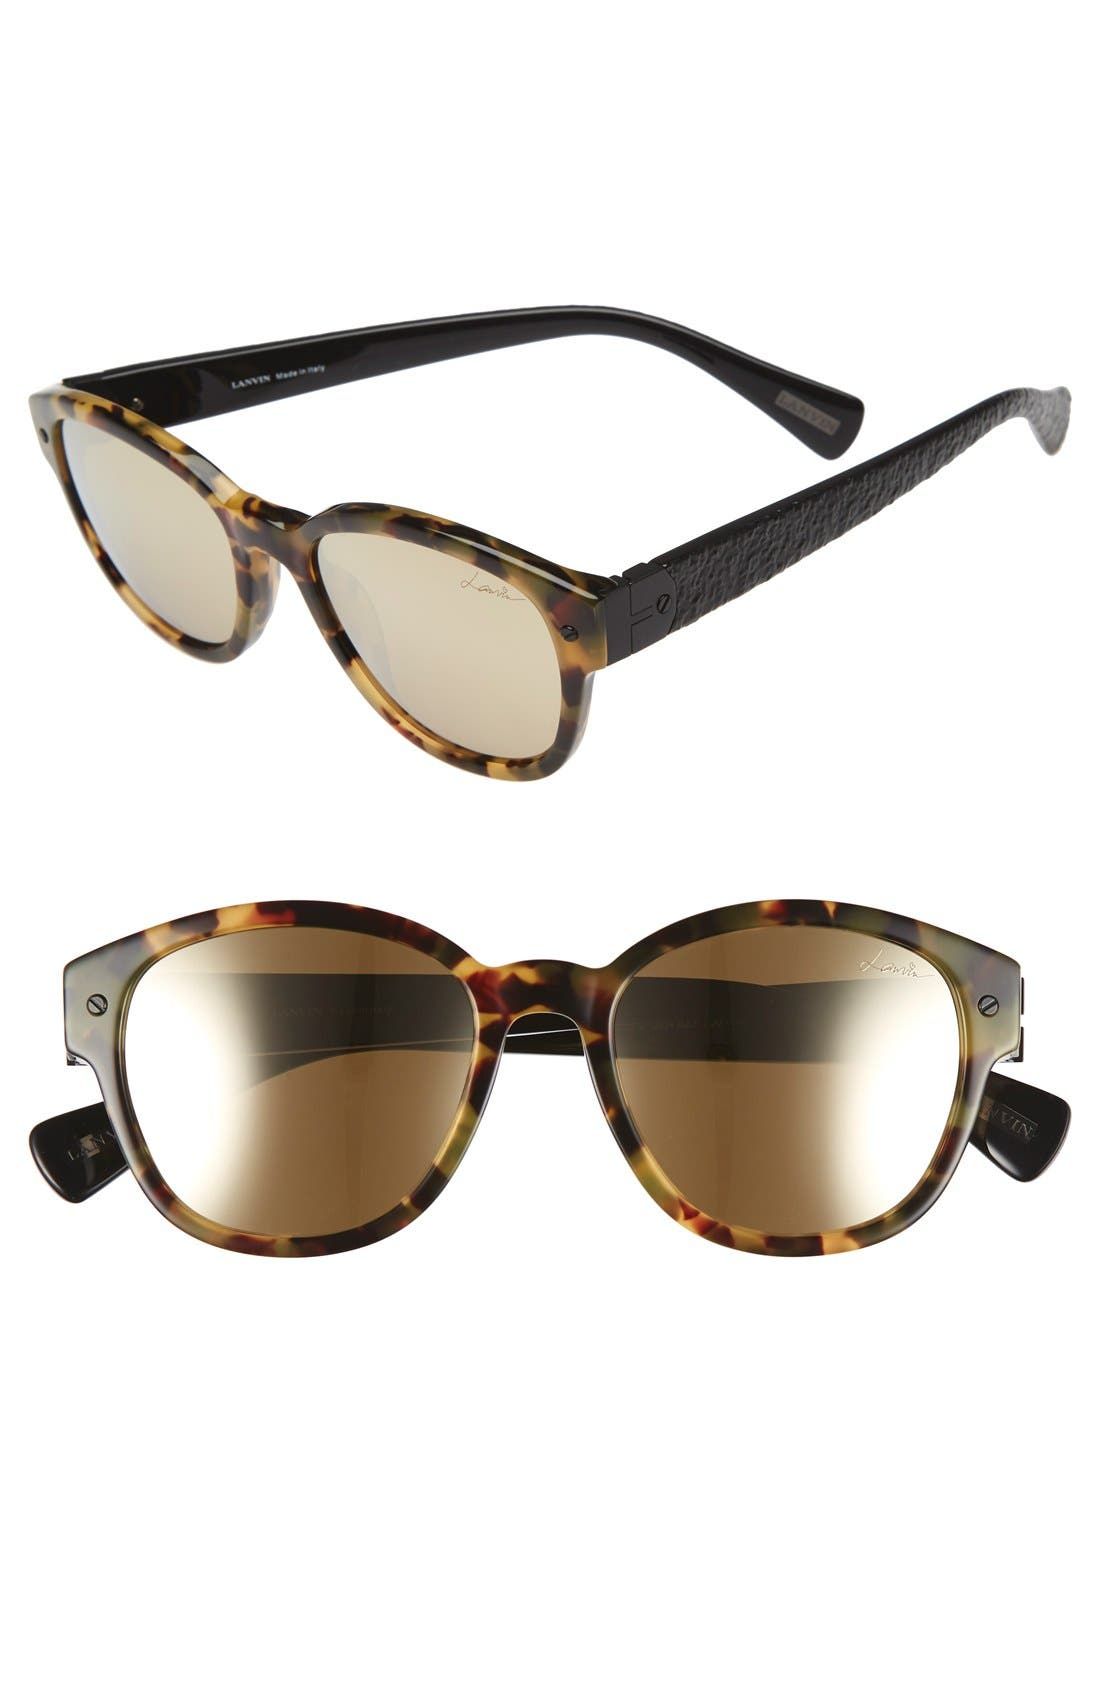 Main Image - Lanvin 50mm Retro Sunglasses